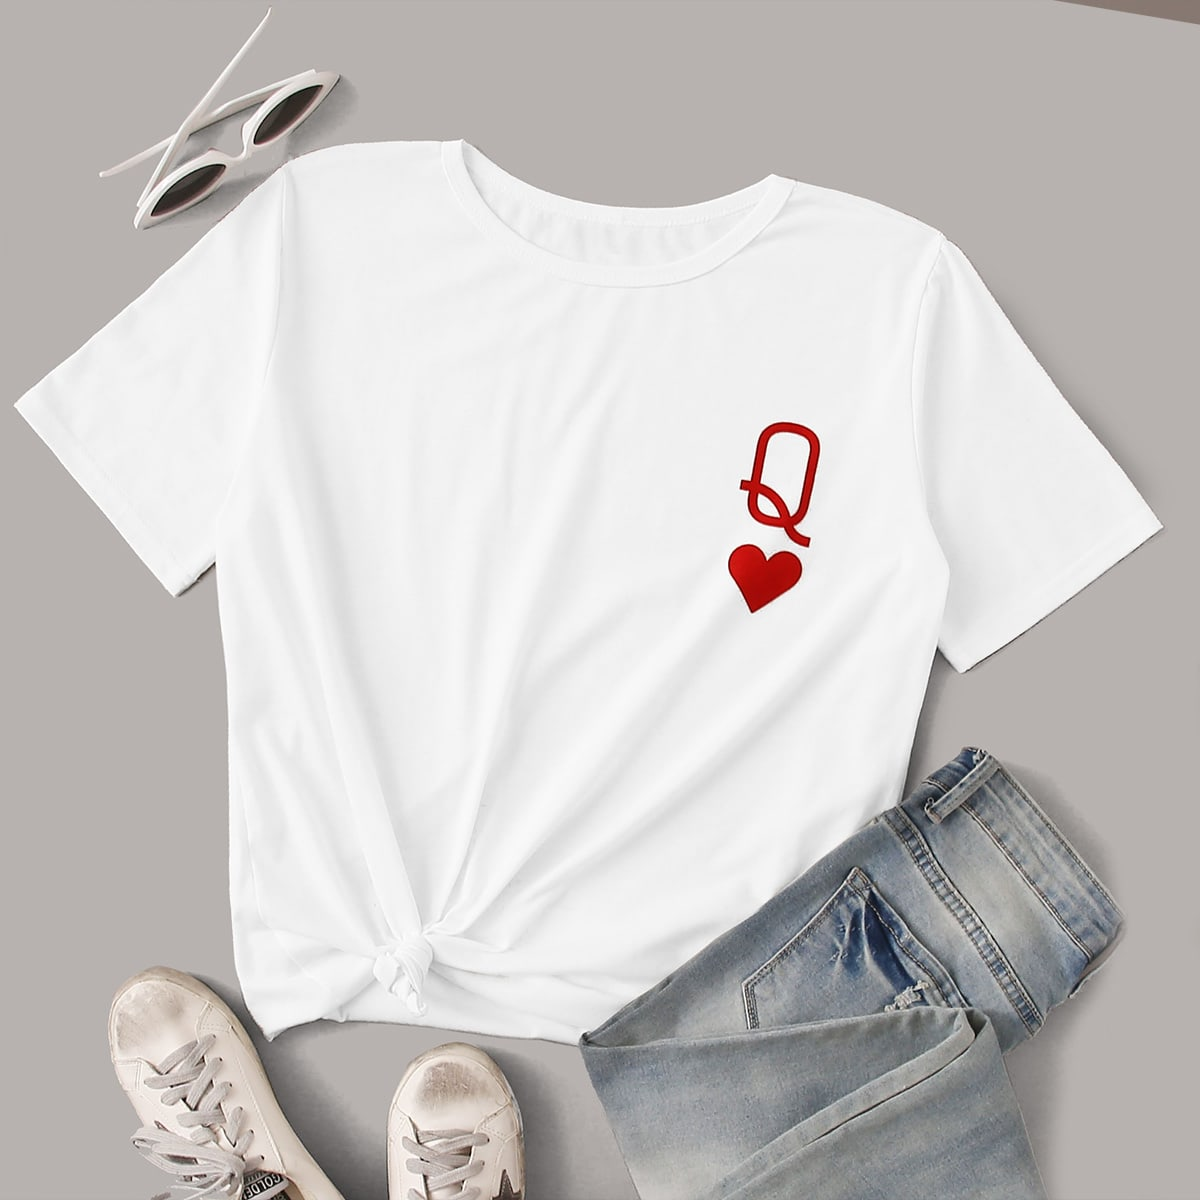 Katy Perry's Picks Queen of Hearts Symbol Graphic Tee